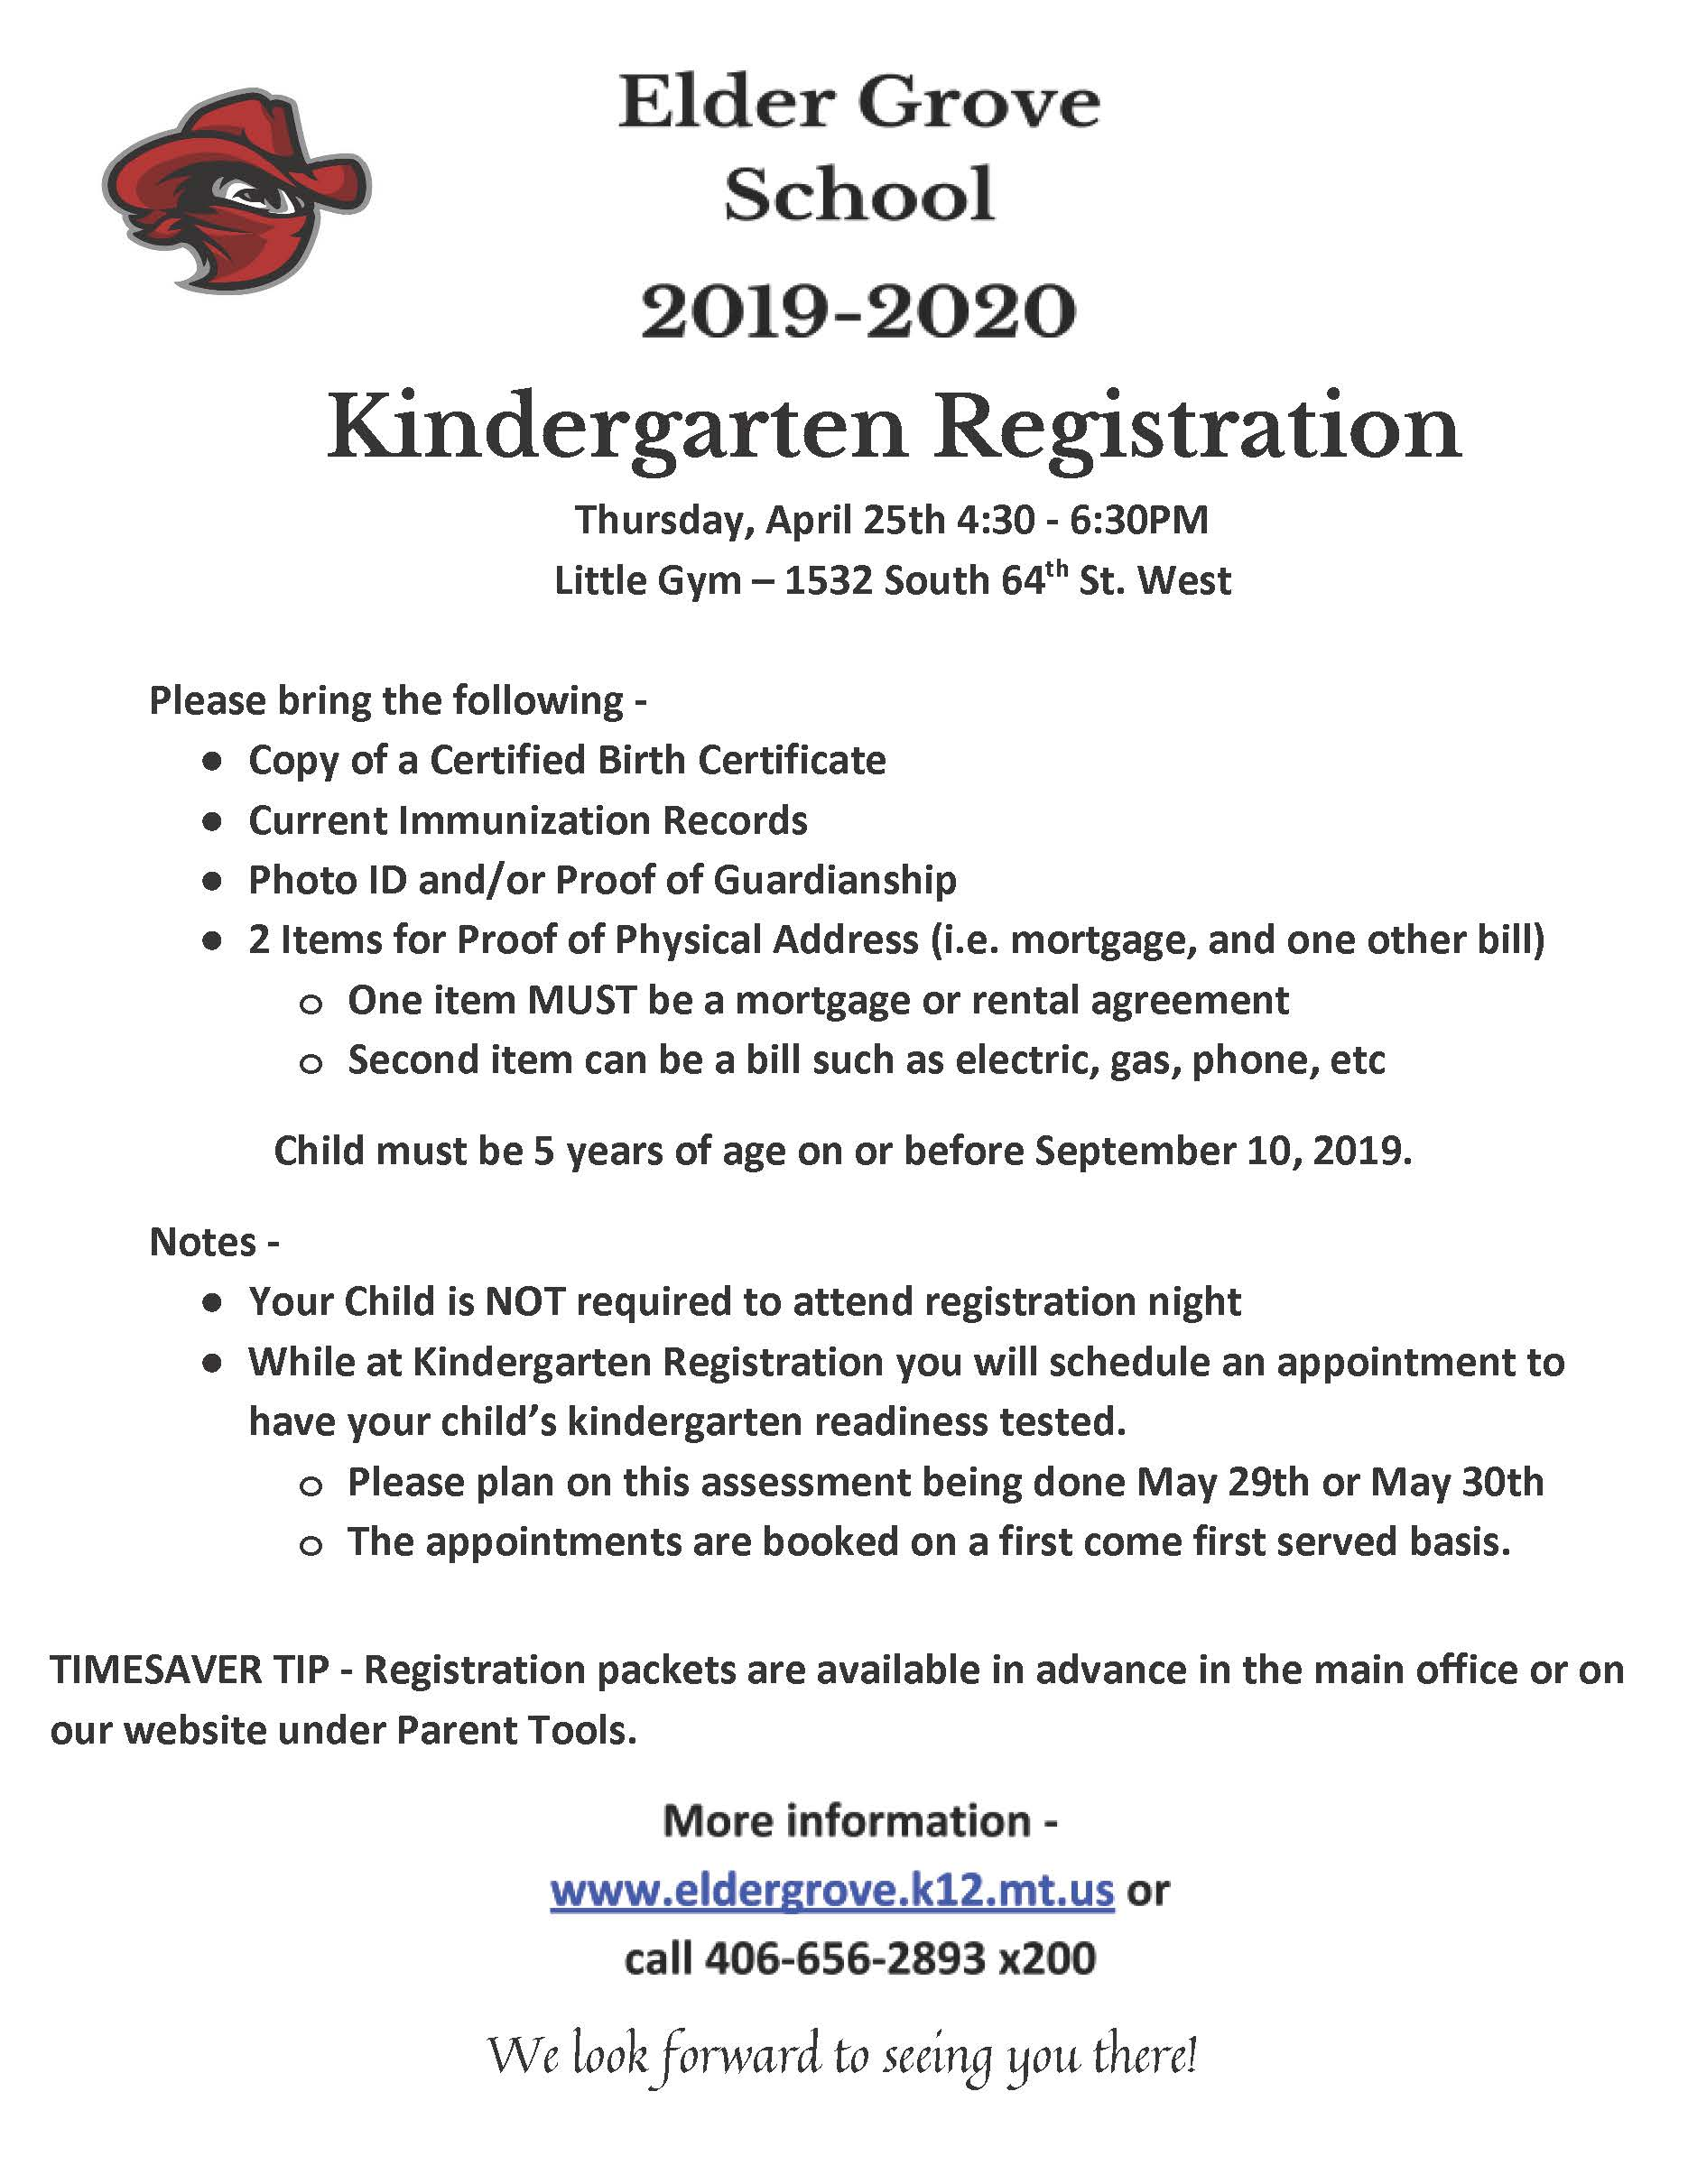 Kindergarten Registration Flyer